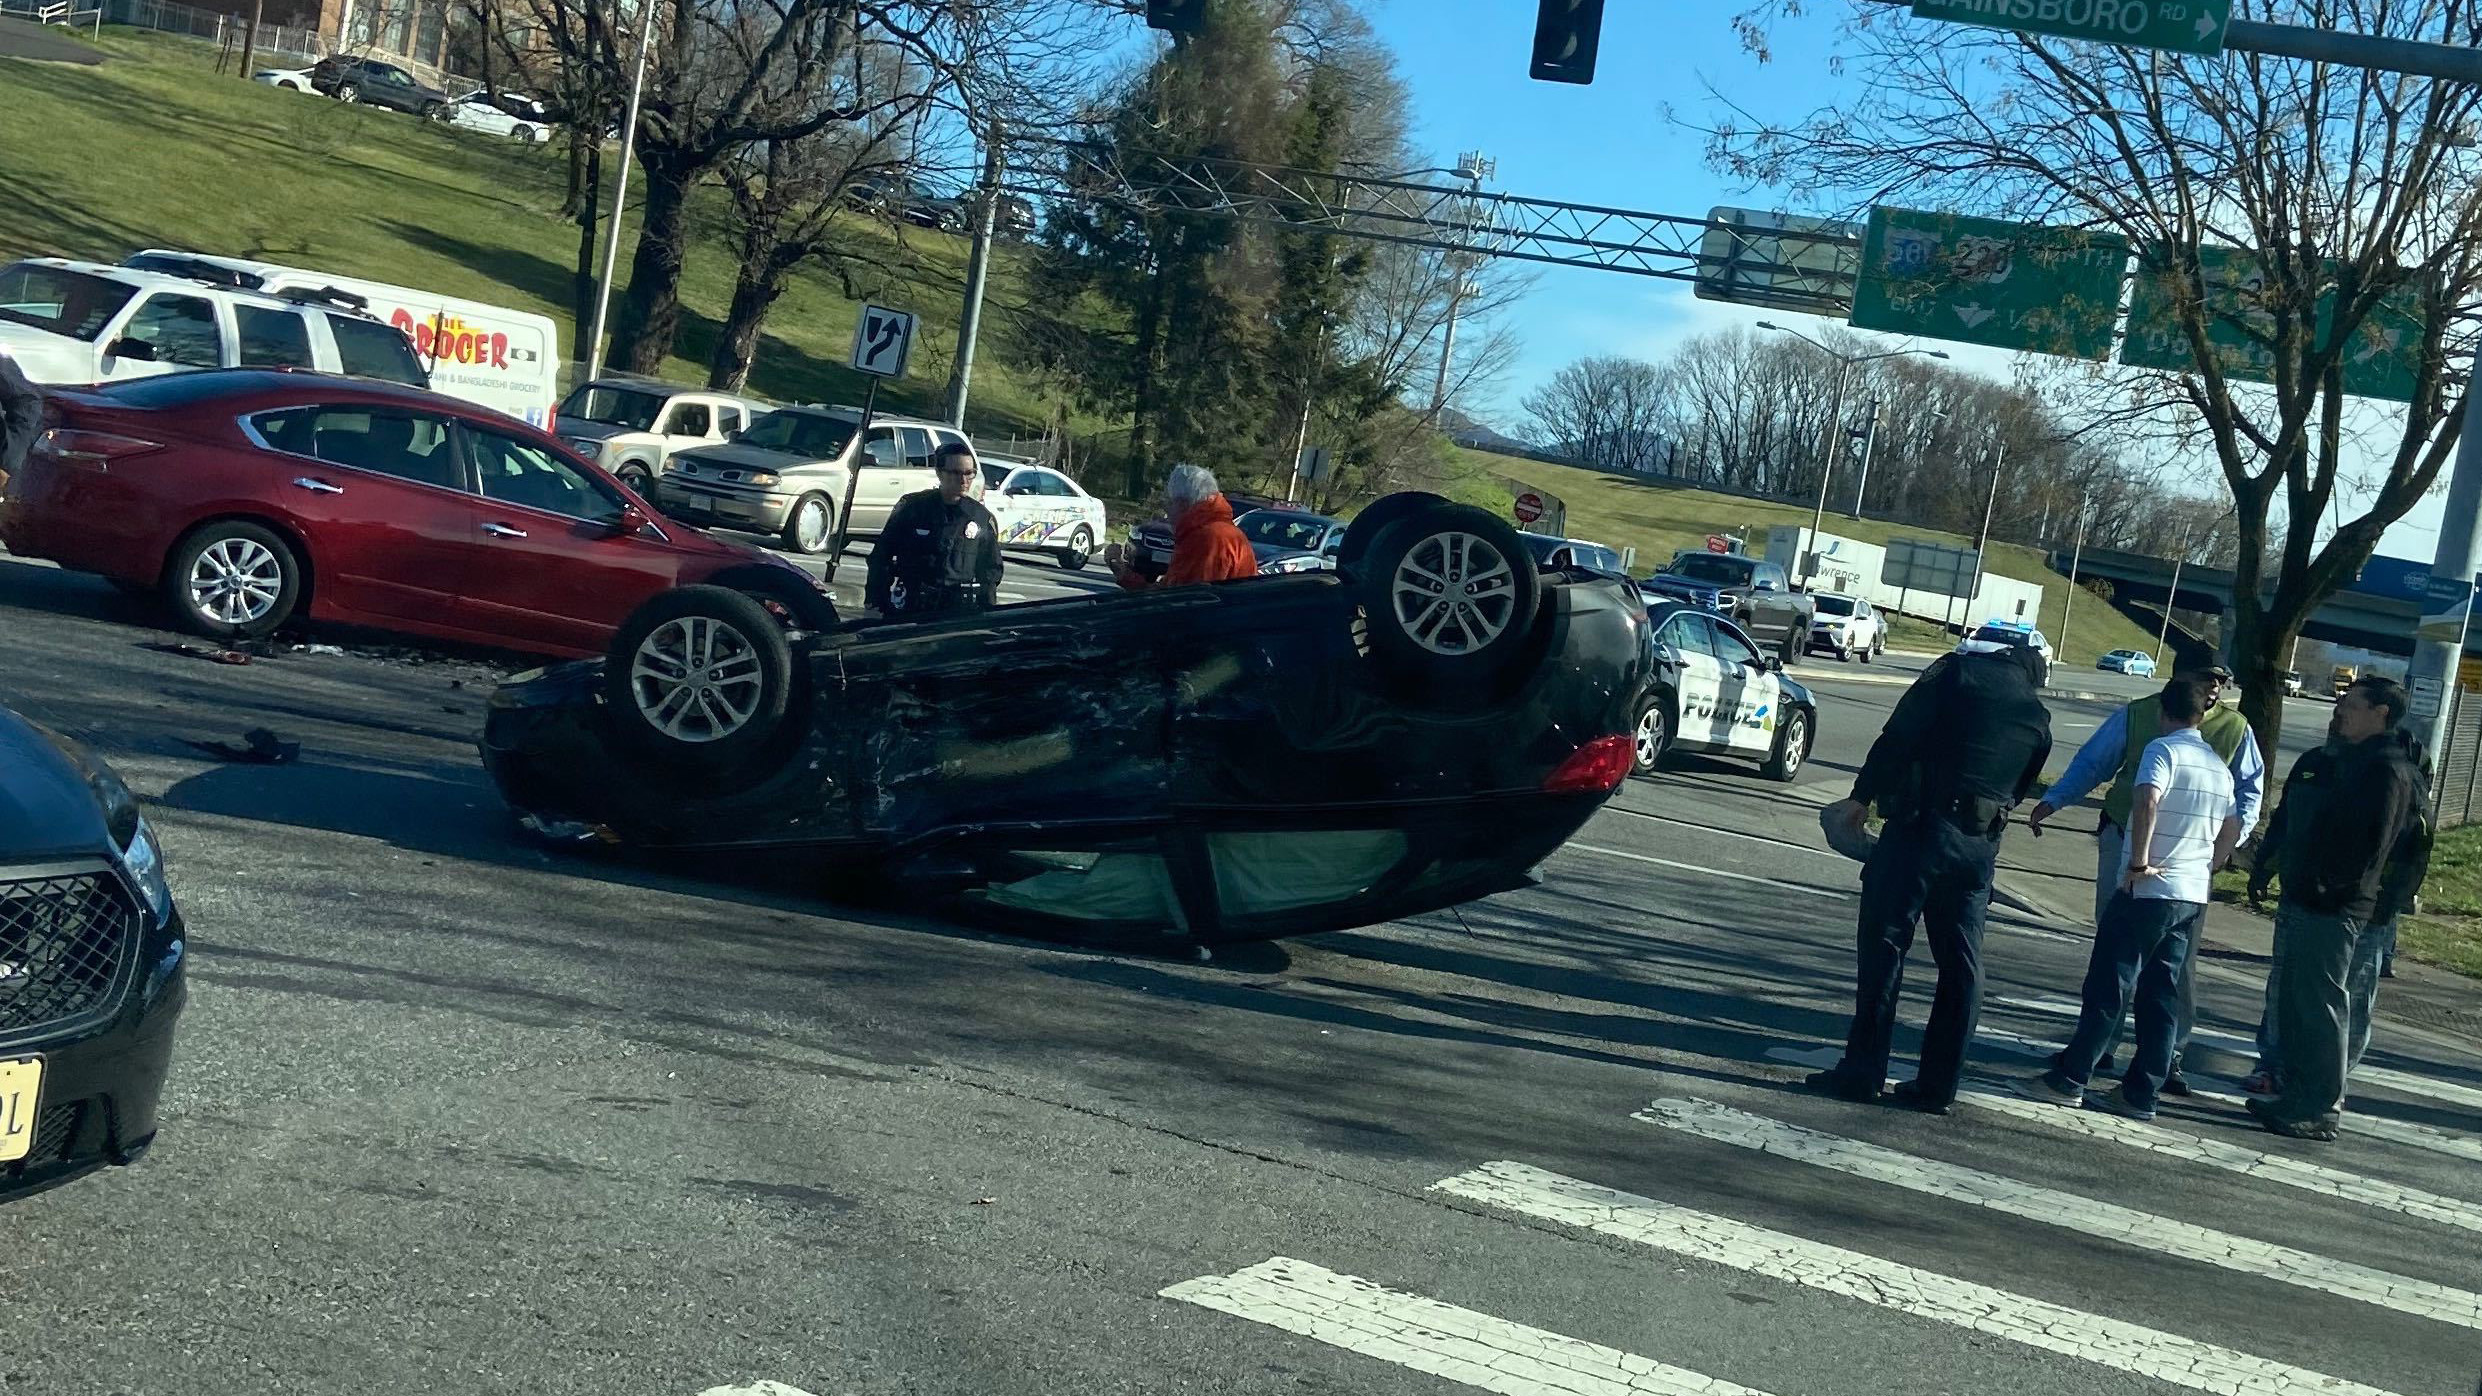 This car crashed and flipped on Thursday, Jan. 16, at the intersection of Orange Avenue and Gainsboro Road Northwest near downtown Roanoke. (Photo: Courtesy Derek Thompson)